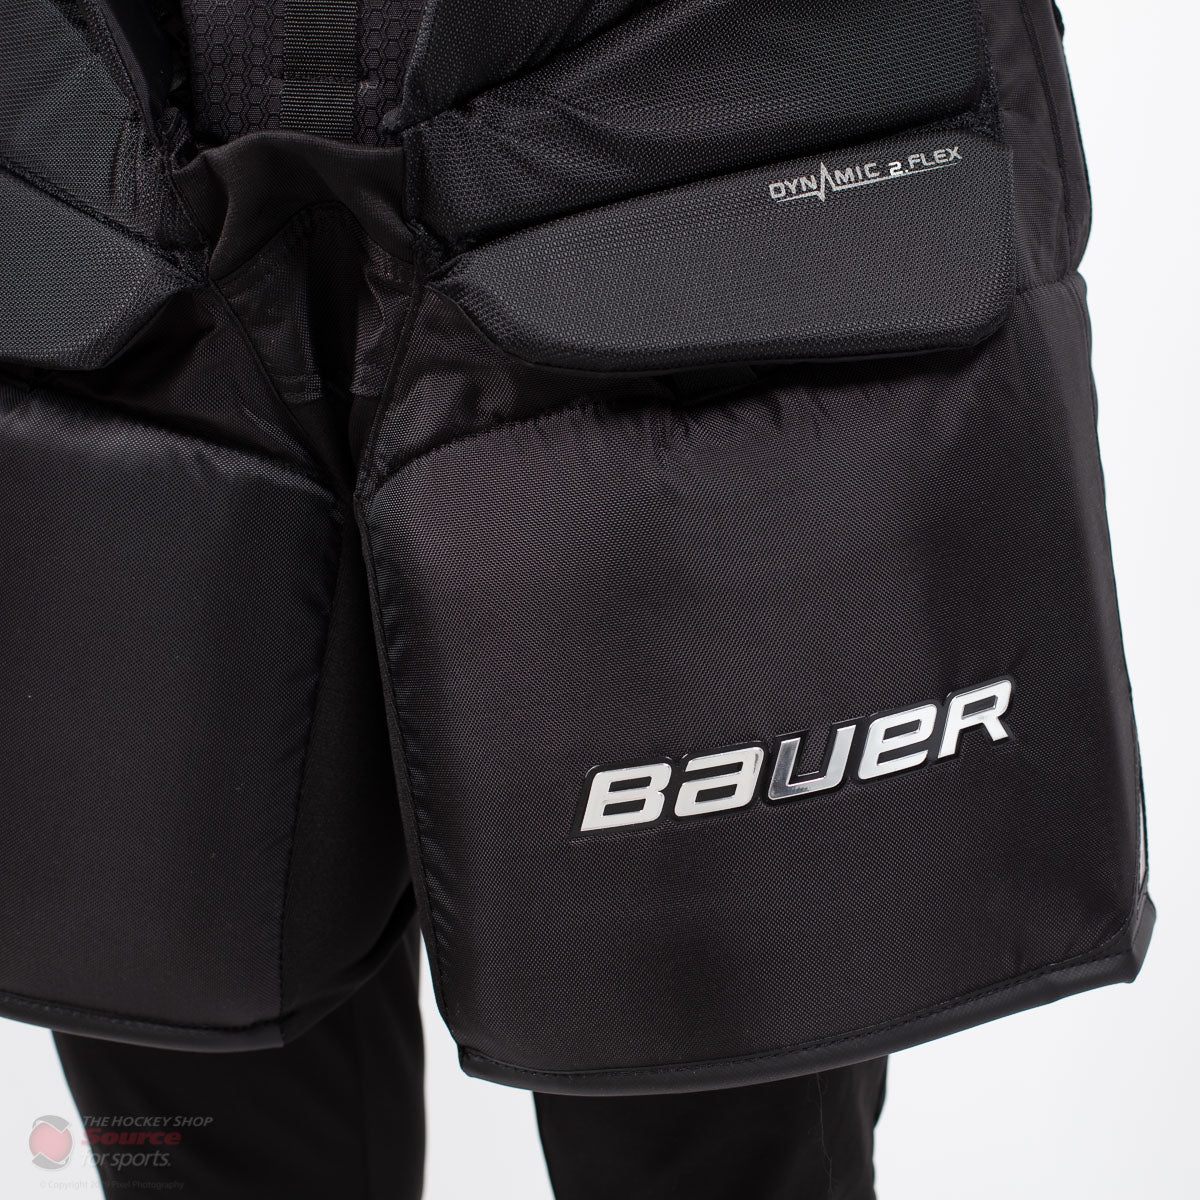 Bauer Vapor 2X Pro Goal Pant Review – The Hockey Shop Source